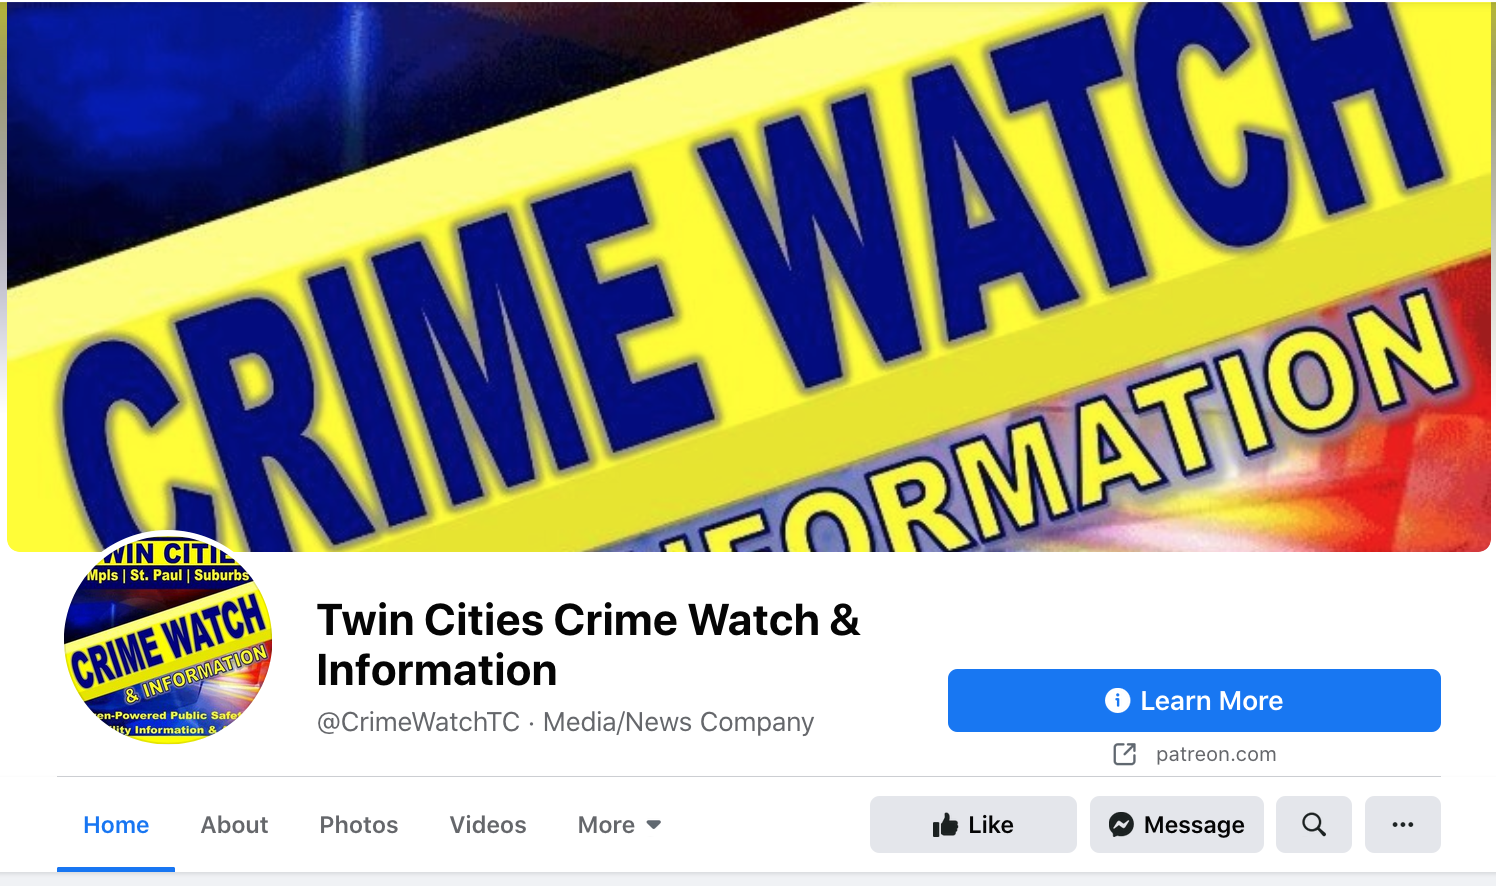 Data show racial bias in reporting from popular Twin Cities crime media network